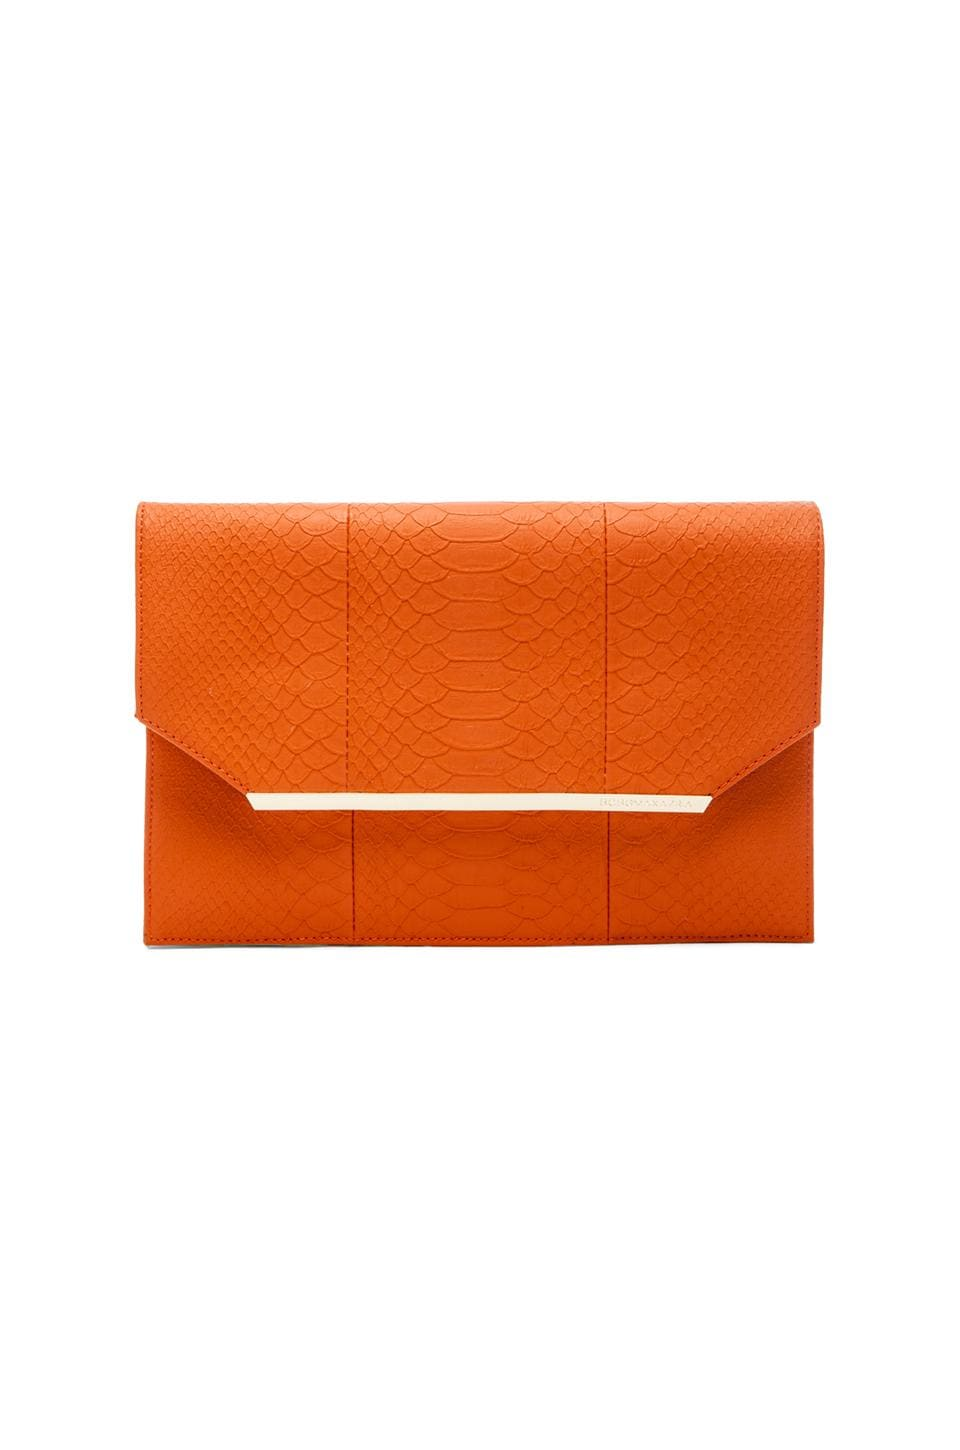 BCBGMAXAZRIA Kelly Envelope in Orange